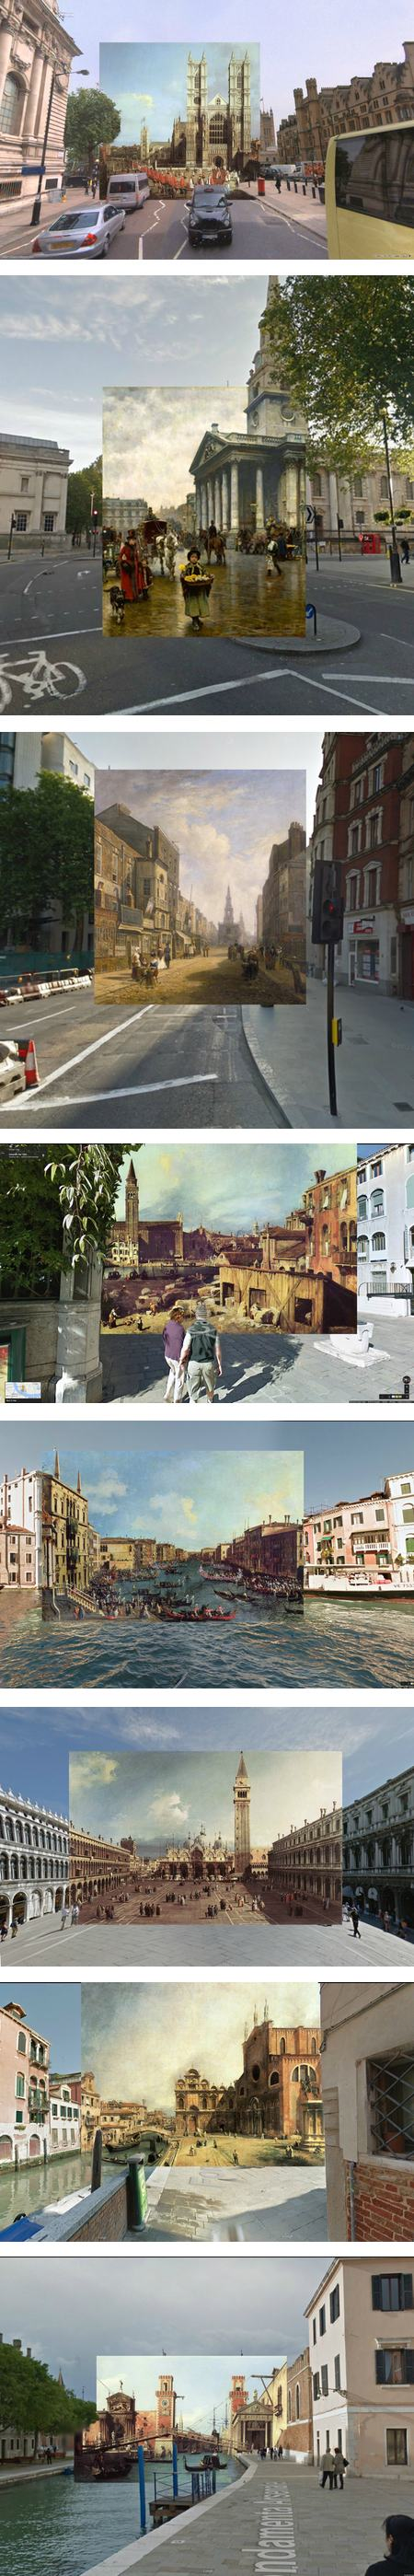 18th century paintings meet Google Street View